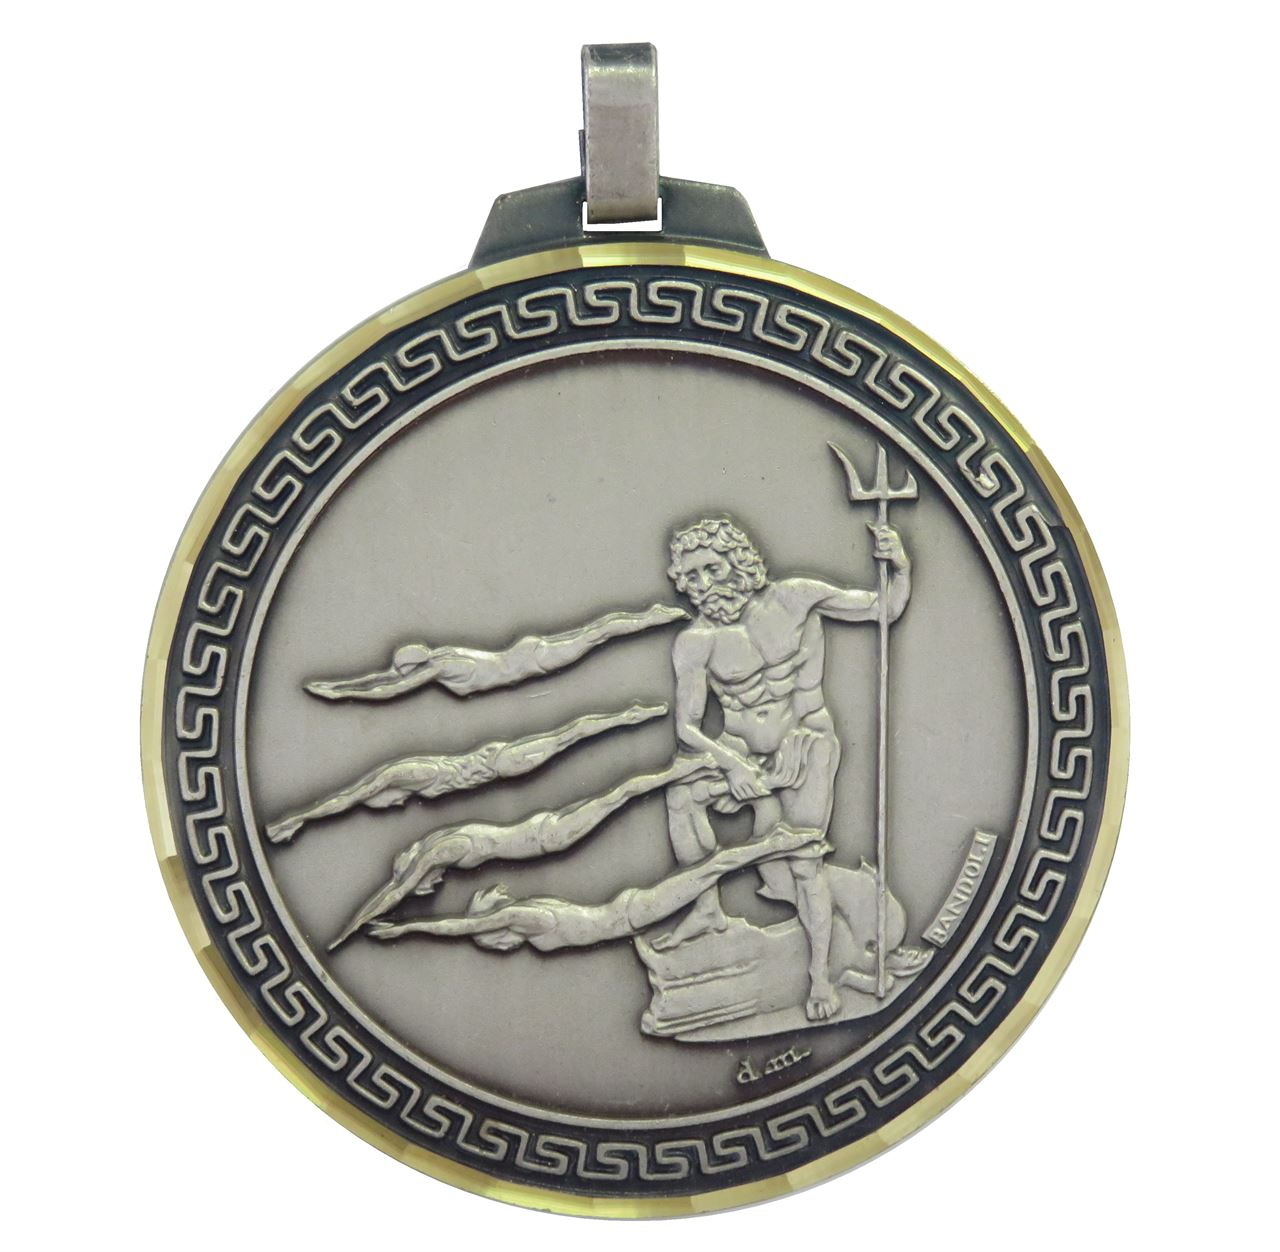 Silver Faceted Female Swimming Medal (size: 70mm) - 247F